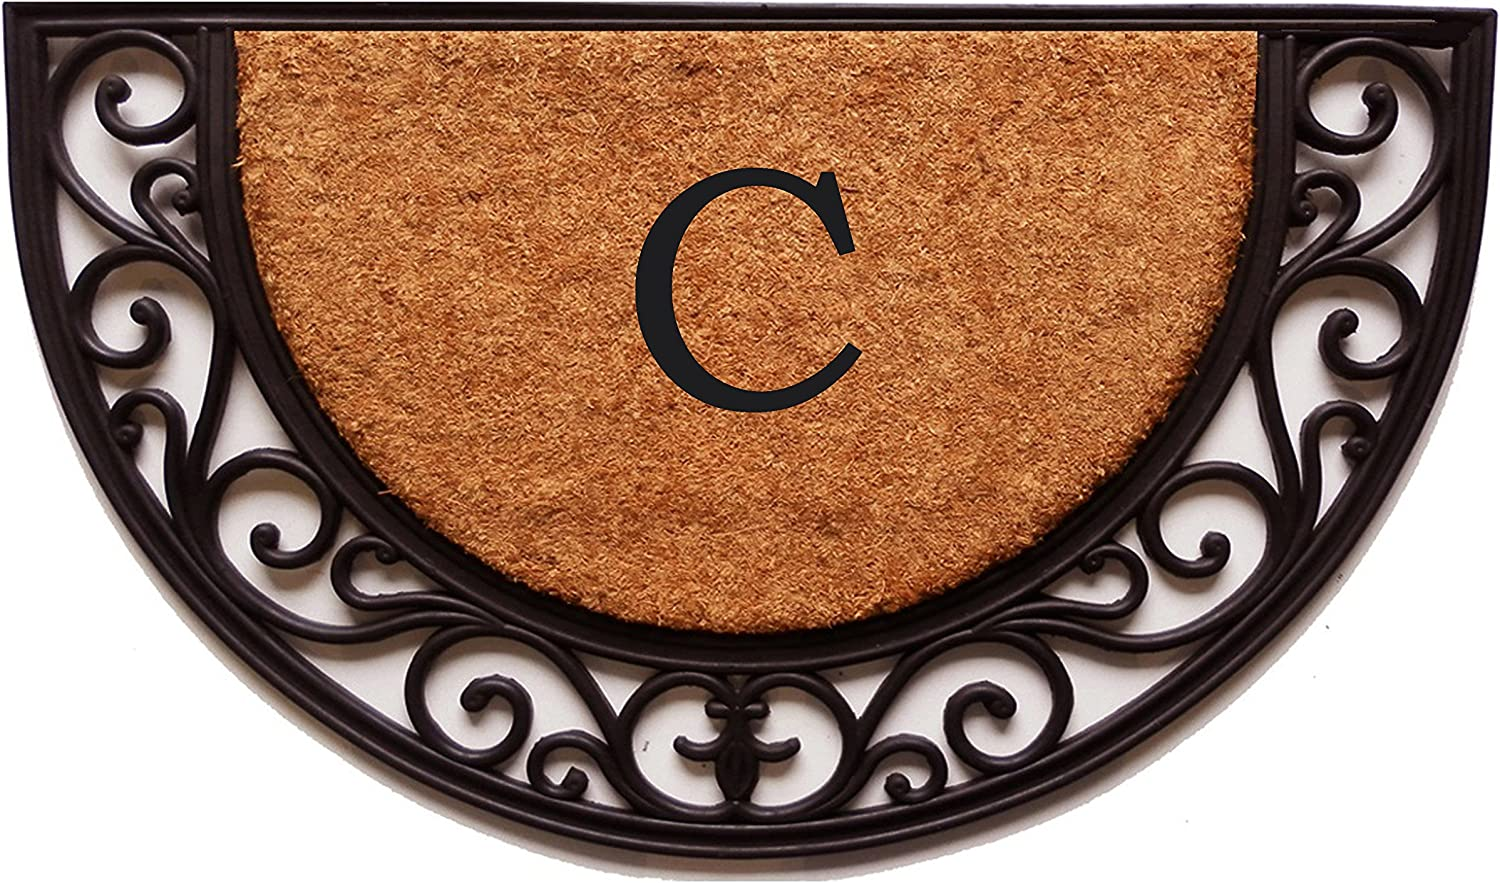 Home & More 100141830C Plantation Arch Monogram Doormat 18  X 30  (Letter C)